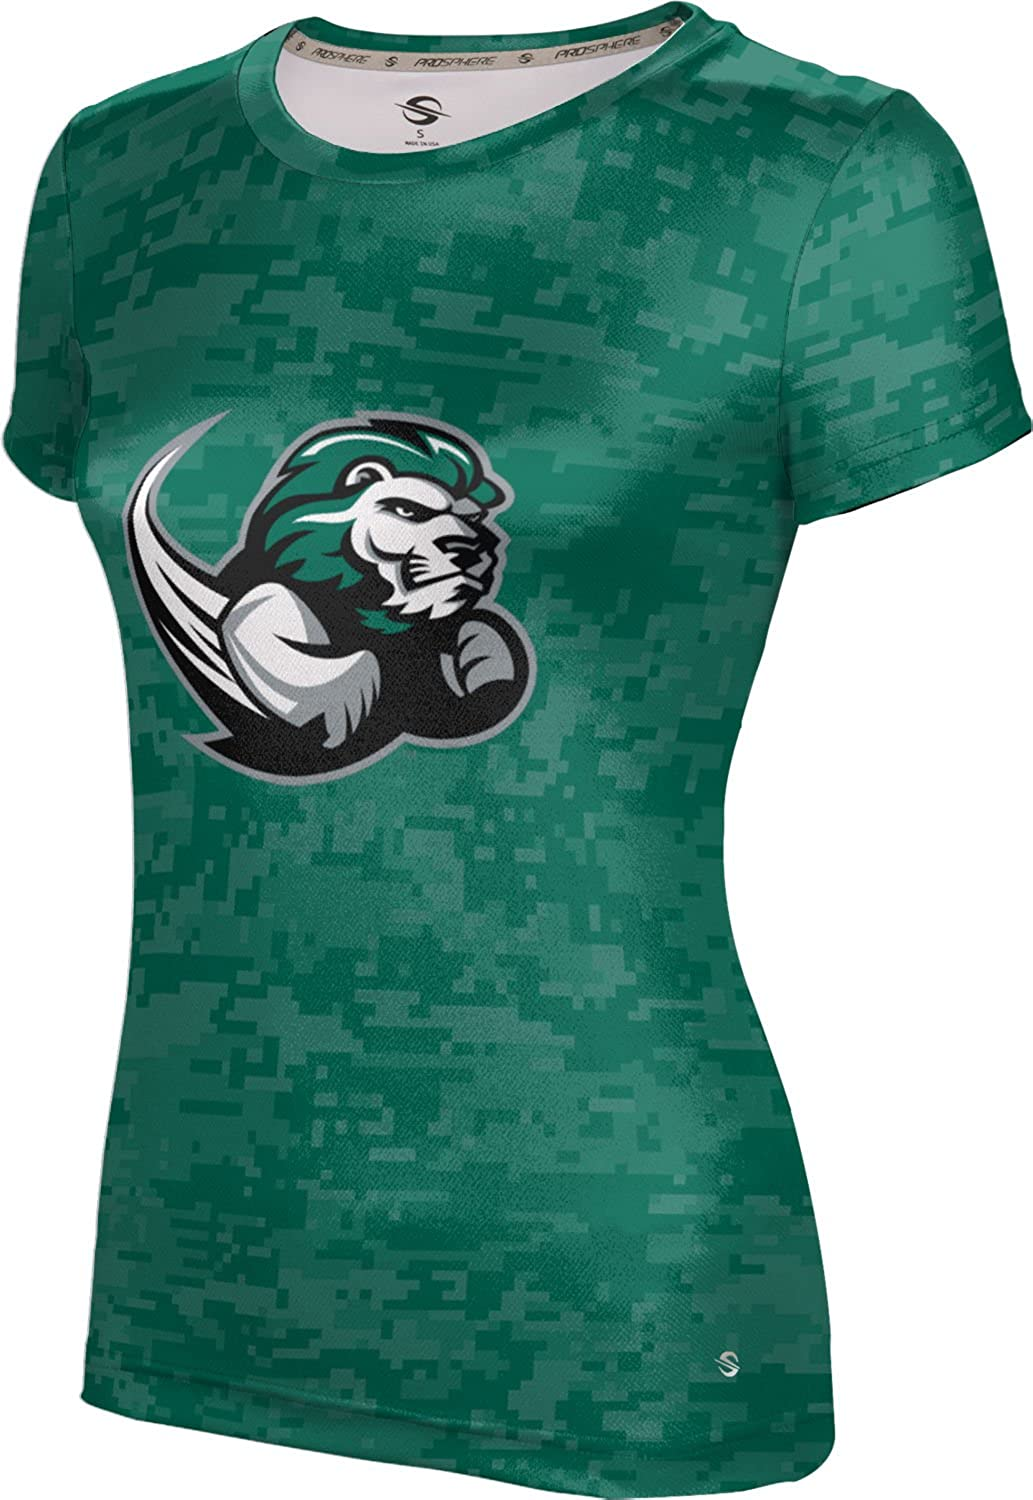 ProSphere Slippery Rock University T-Shirt Women's Performance Free shipping anywhere in the nation Easy-to-use